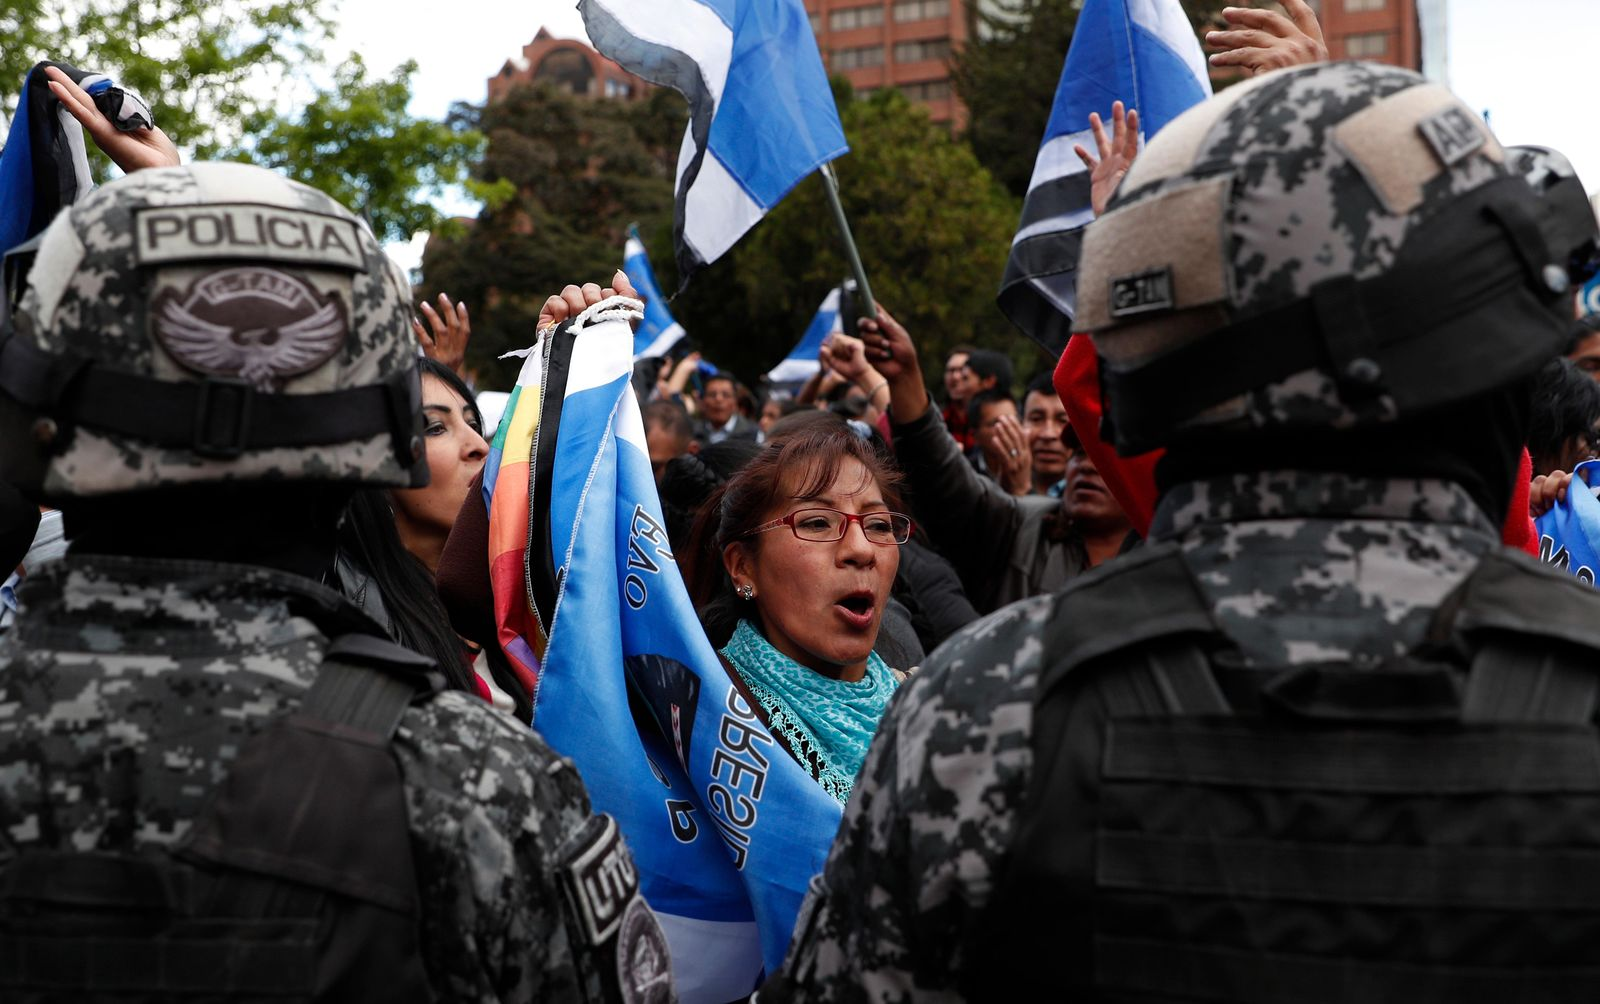 Police stand guard as supporters of Bolivian President Evo Morales, who is running for a fourth term, rally outside the Supreme Electoral Court where election ballots are being counted in La Paz, Bolivia, Monday, Oct. 21, 2019. (AP Photo/Juan Karita)